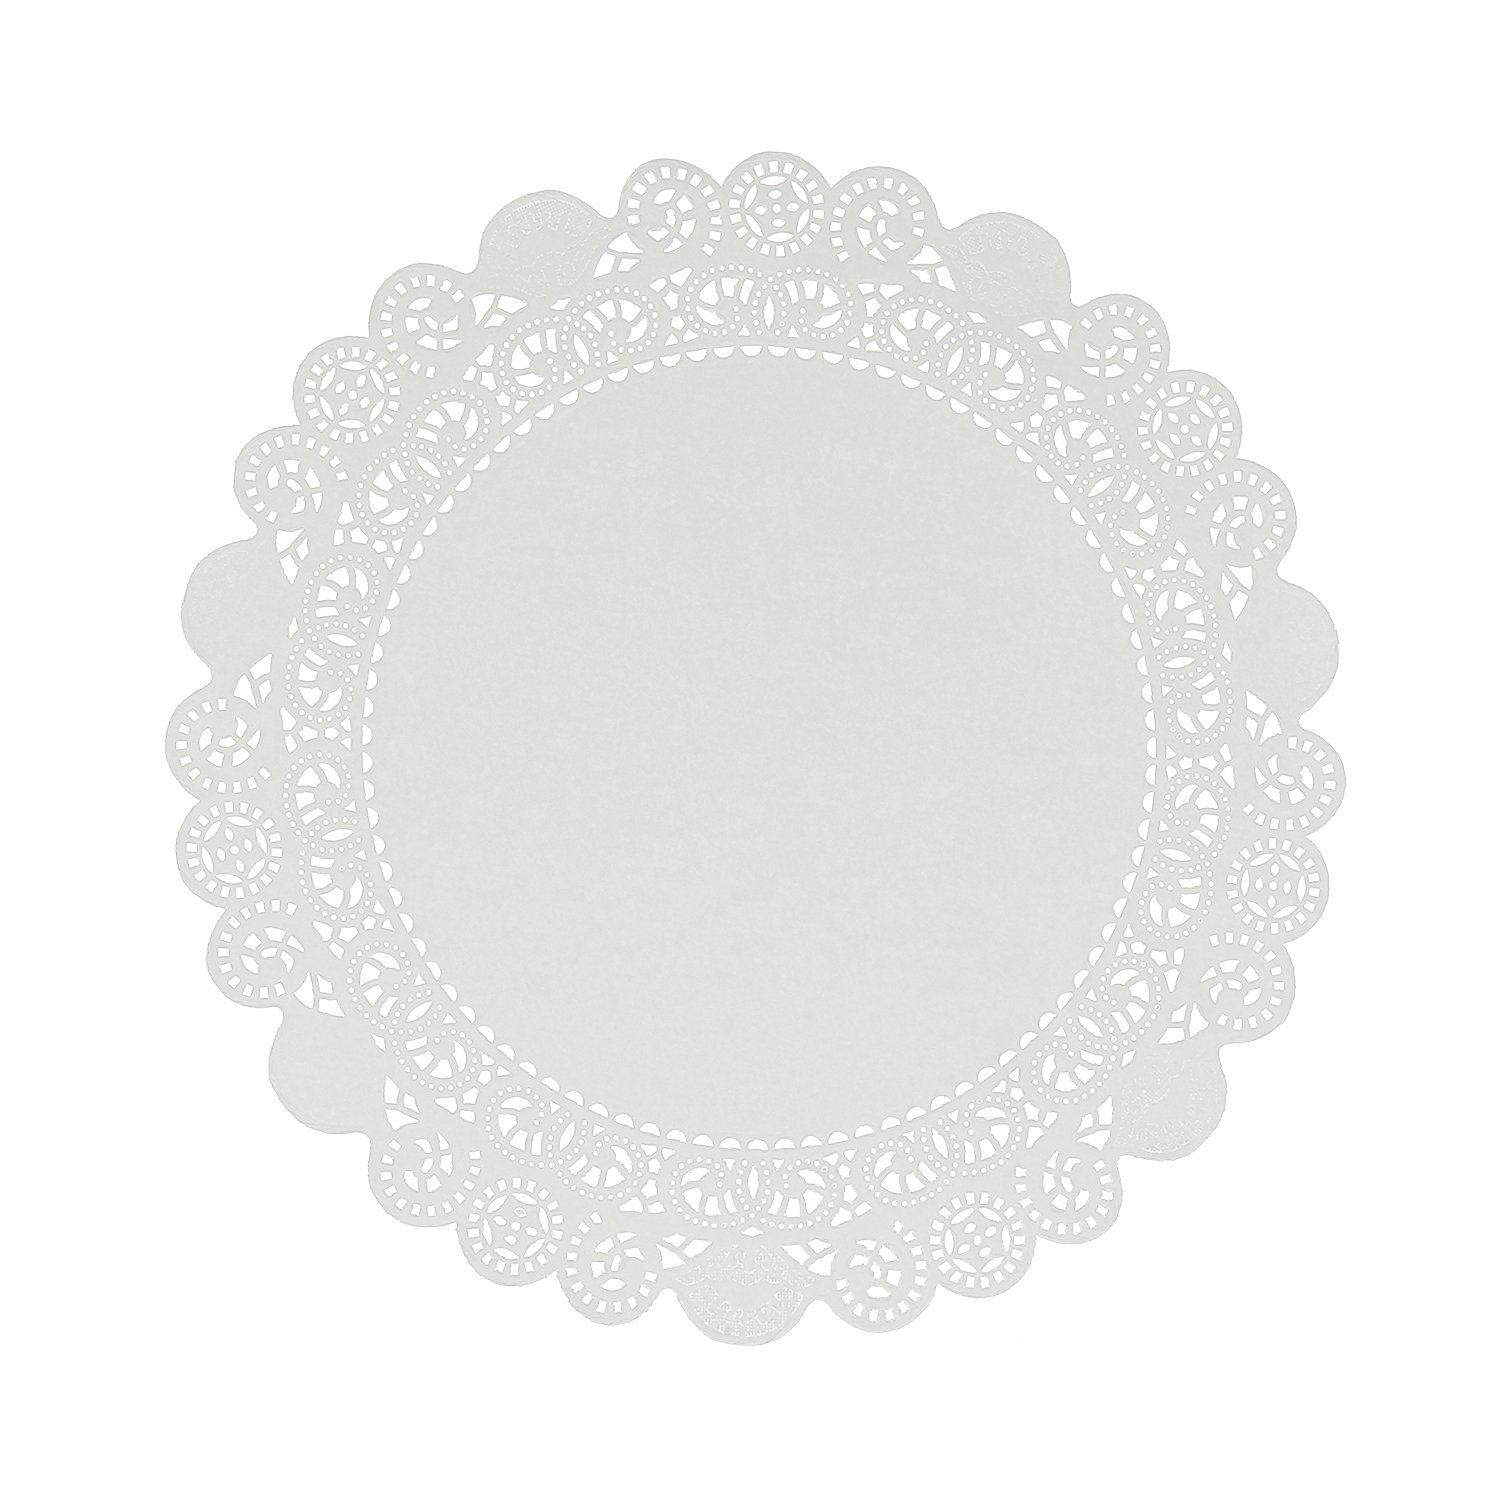 Royal 12'' Disposable Paper Lace Doilies, Package of 500